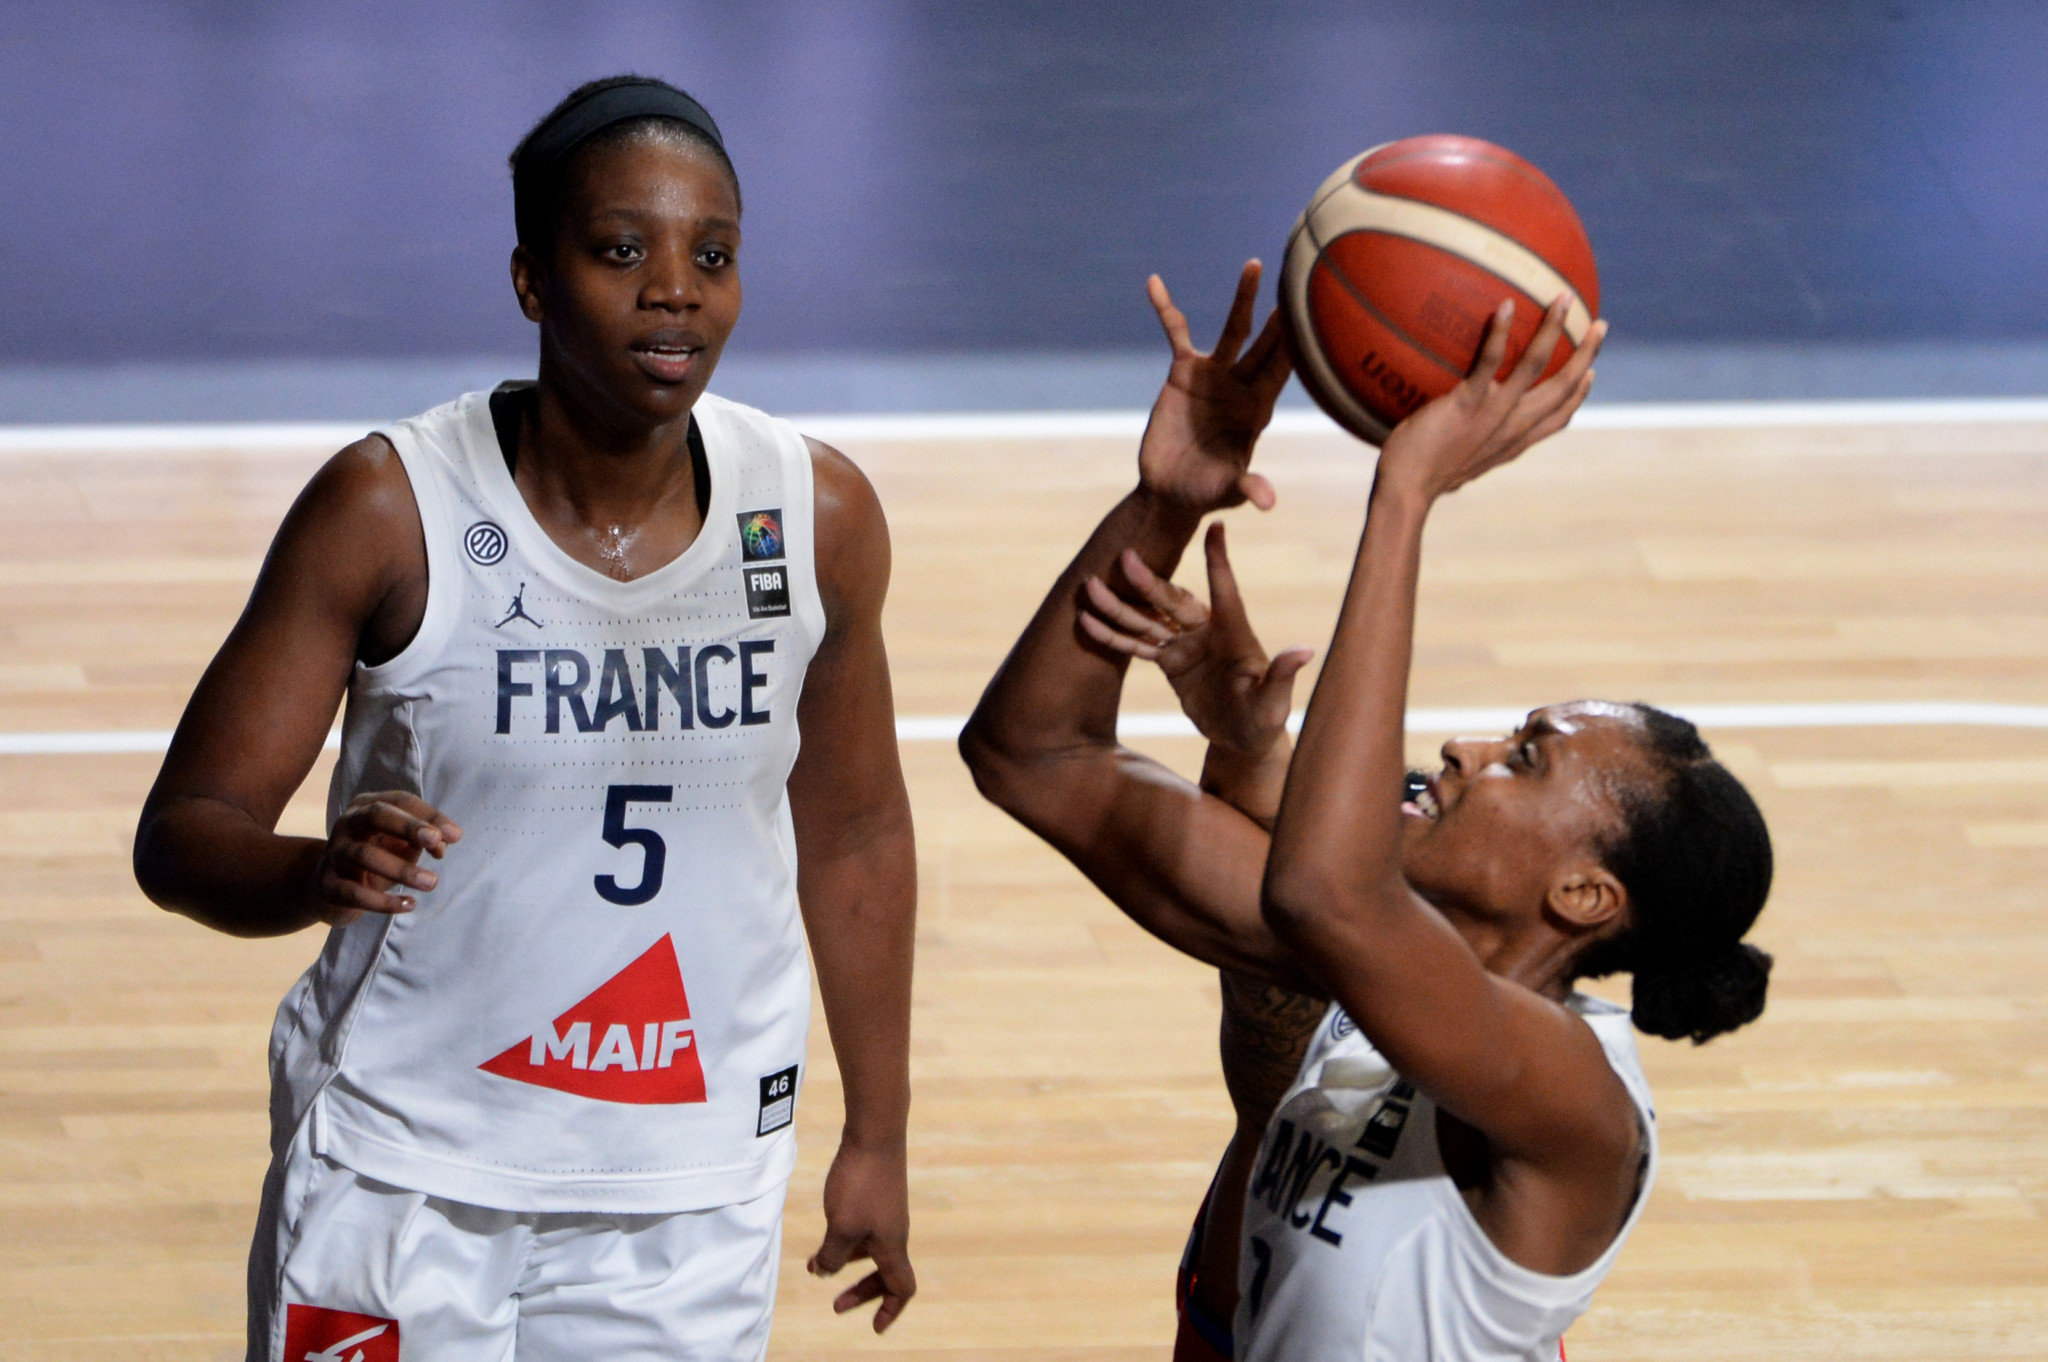 The French Basketball Federation will use its own kit supplier ©Getty Images